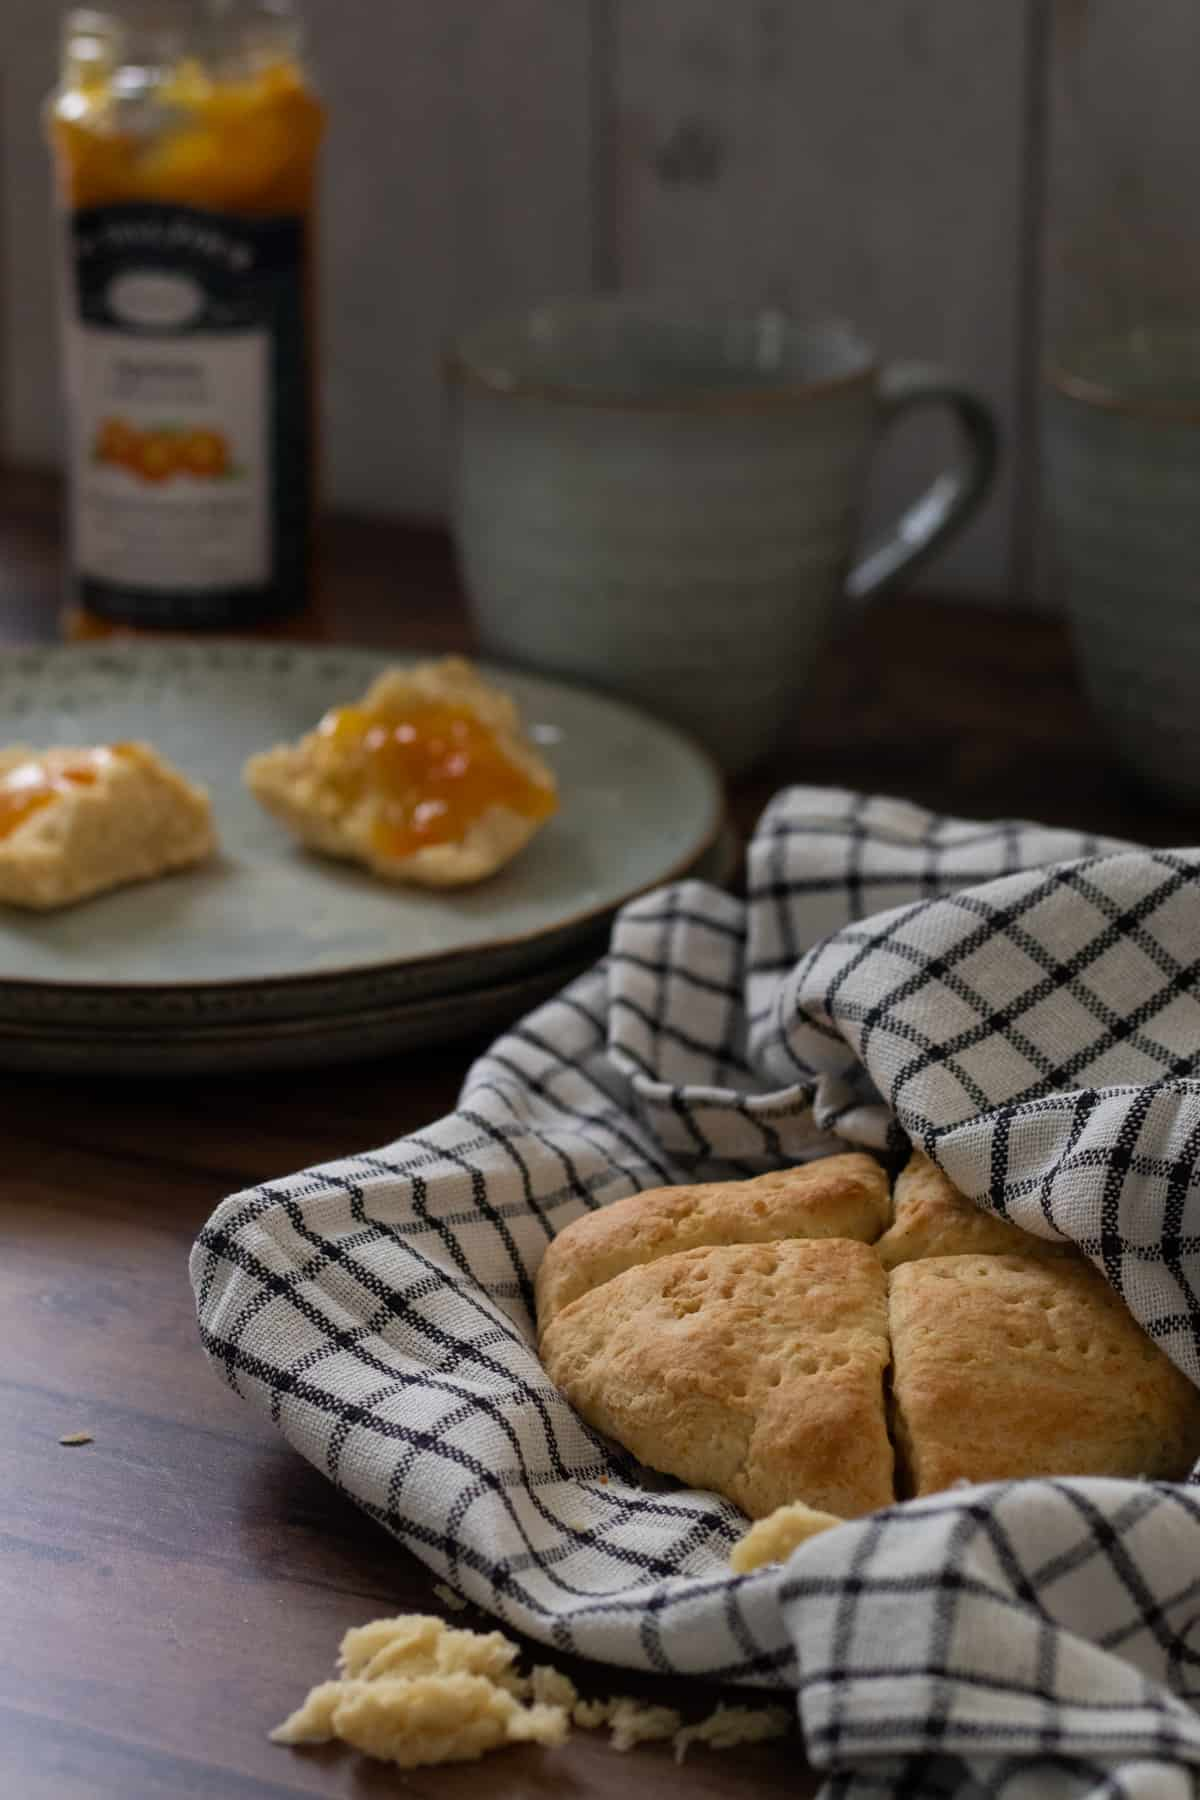 scones in a kitchen towel with some scones topped with marmalade in the background